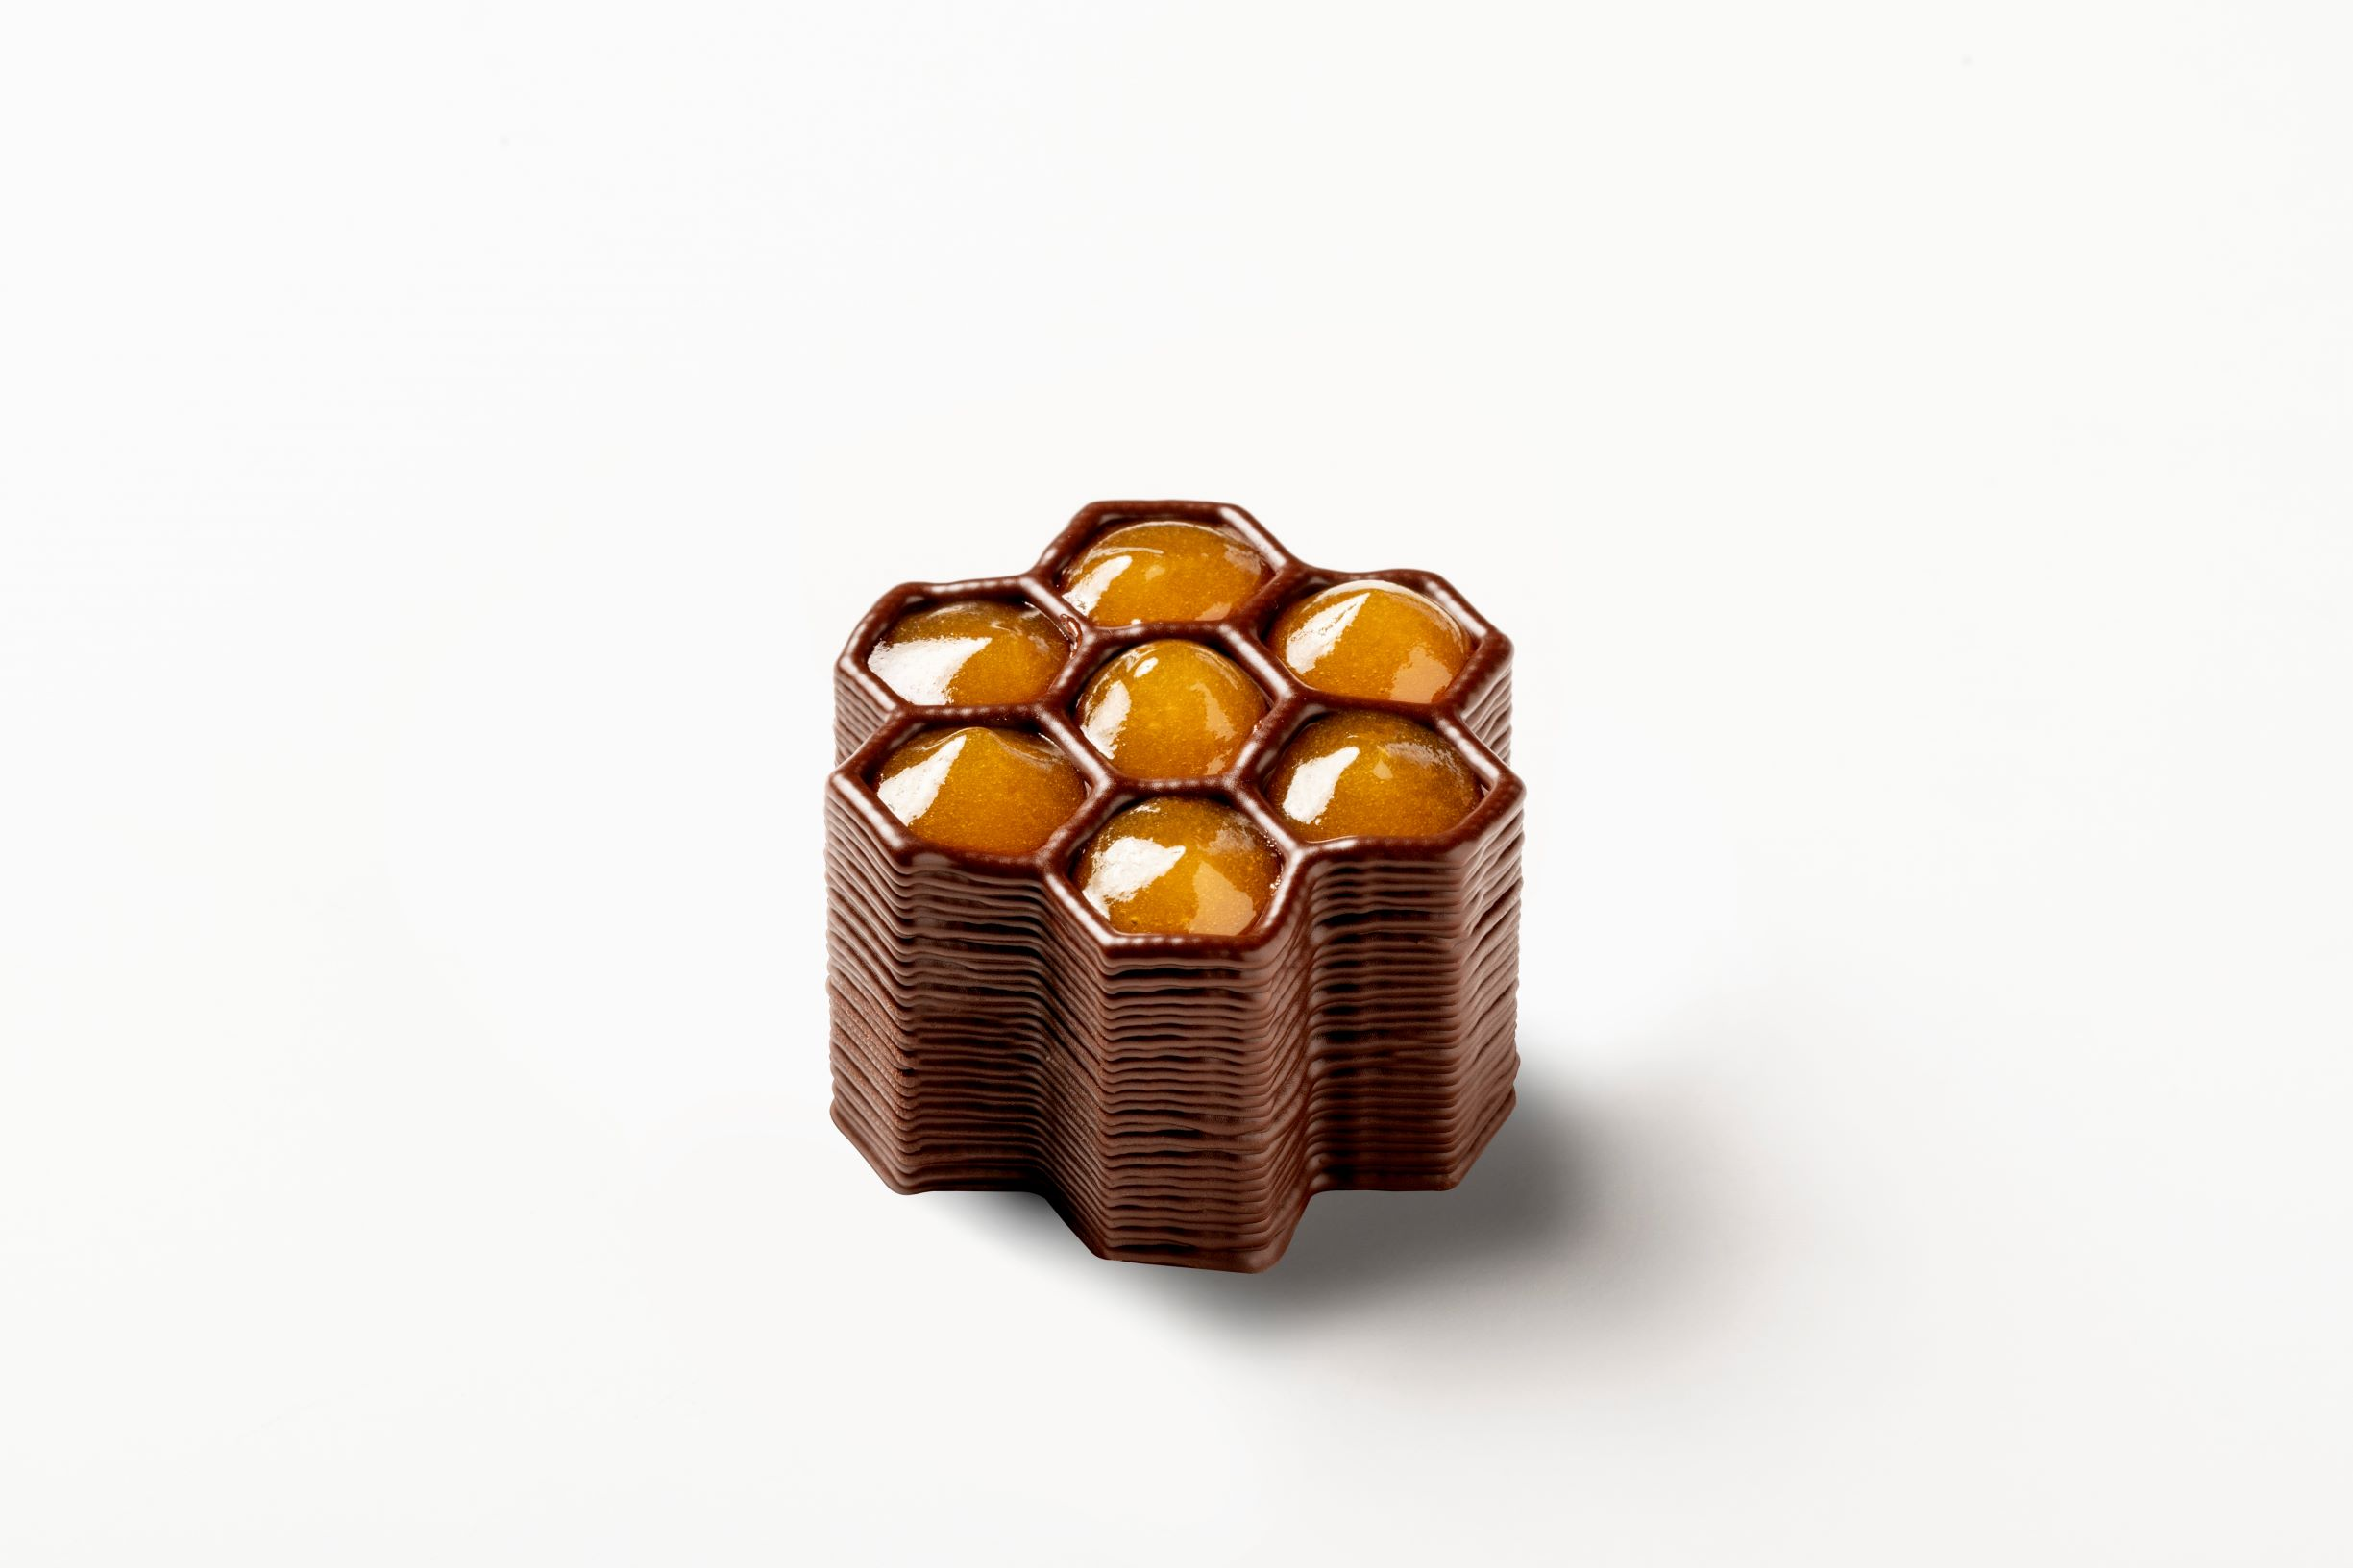 3D printed chocolate shape filled with marmalade made by a FoodJet 3D printing system